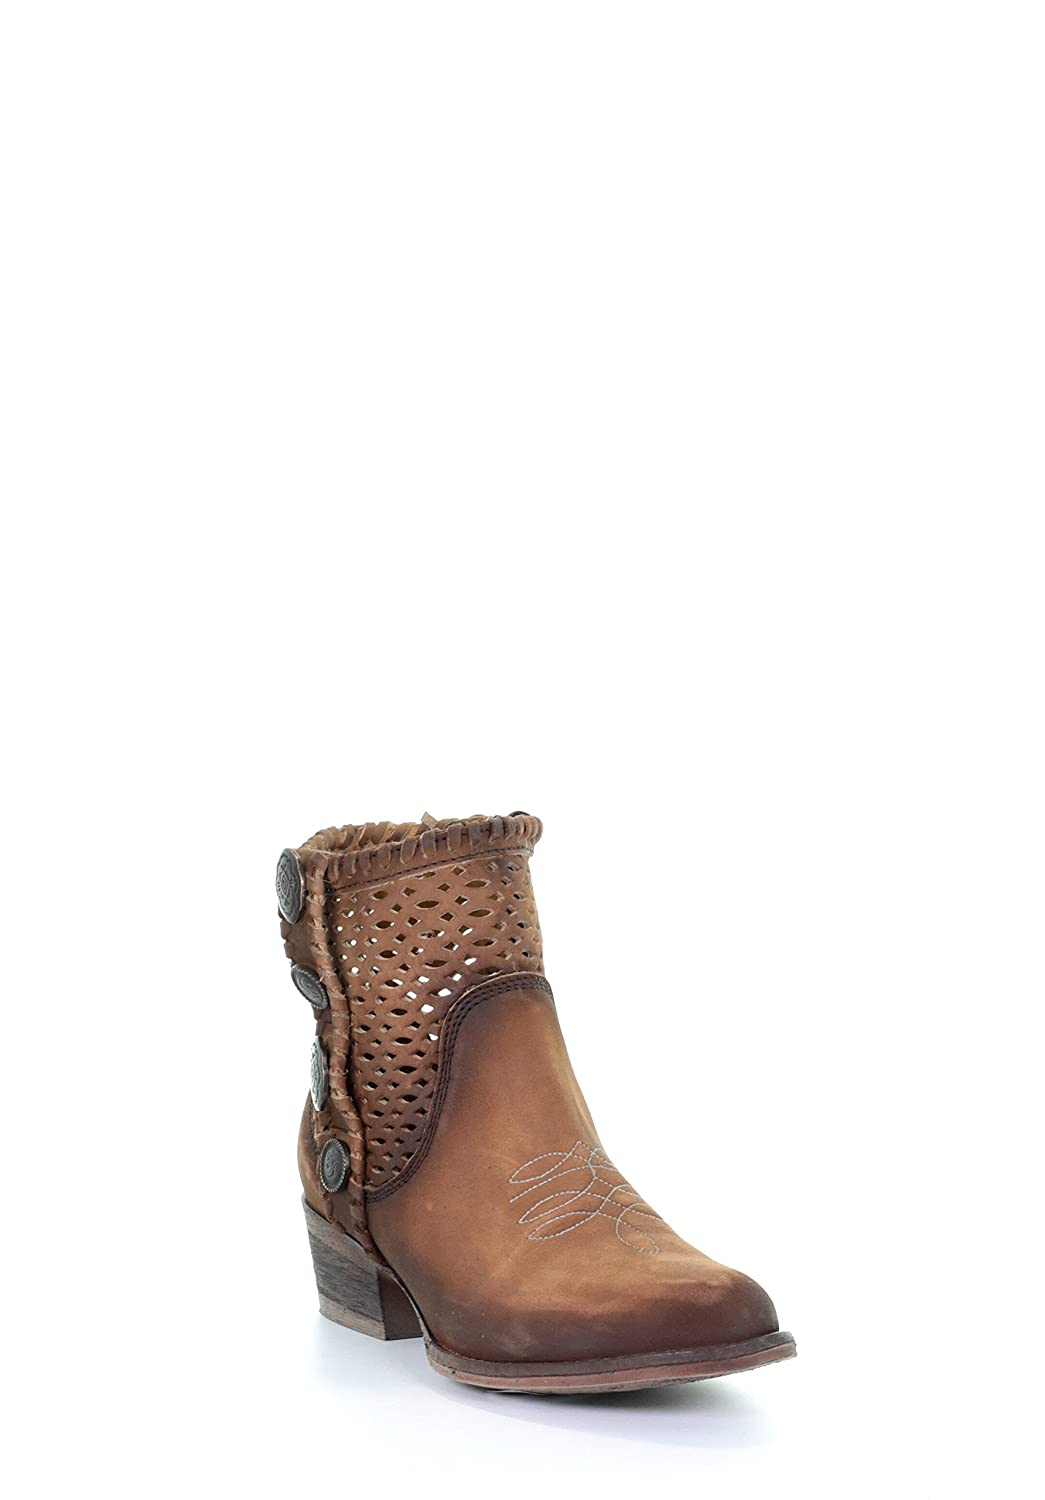 Circle G Women's Cutout Studs Round Toe Leather Western Ankle Cowboy Boots - Chocolate Chocolate